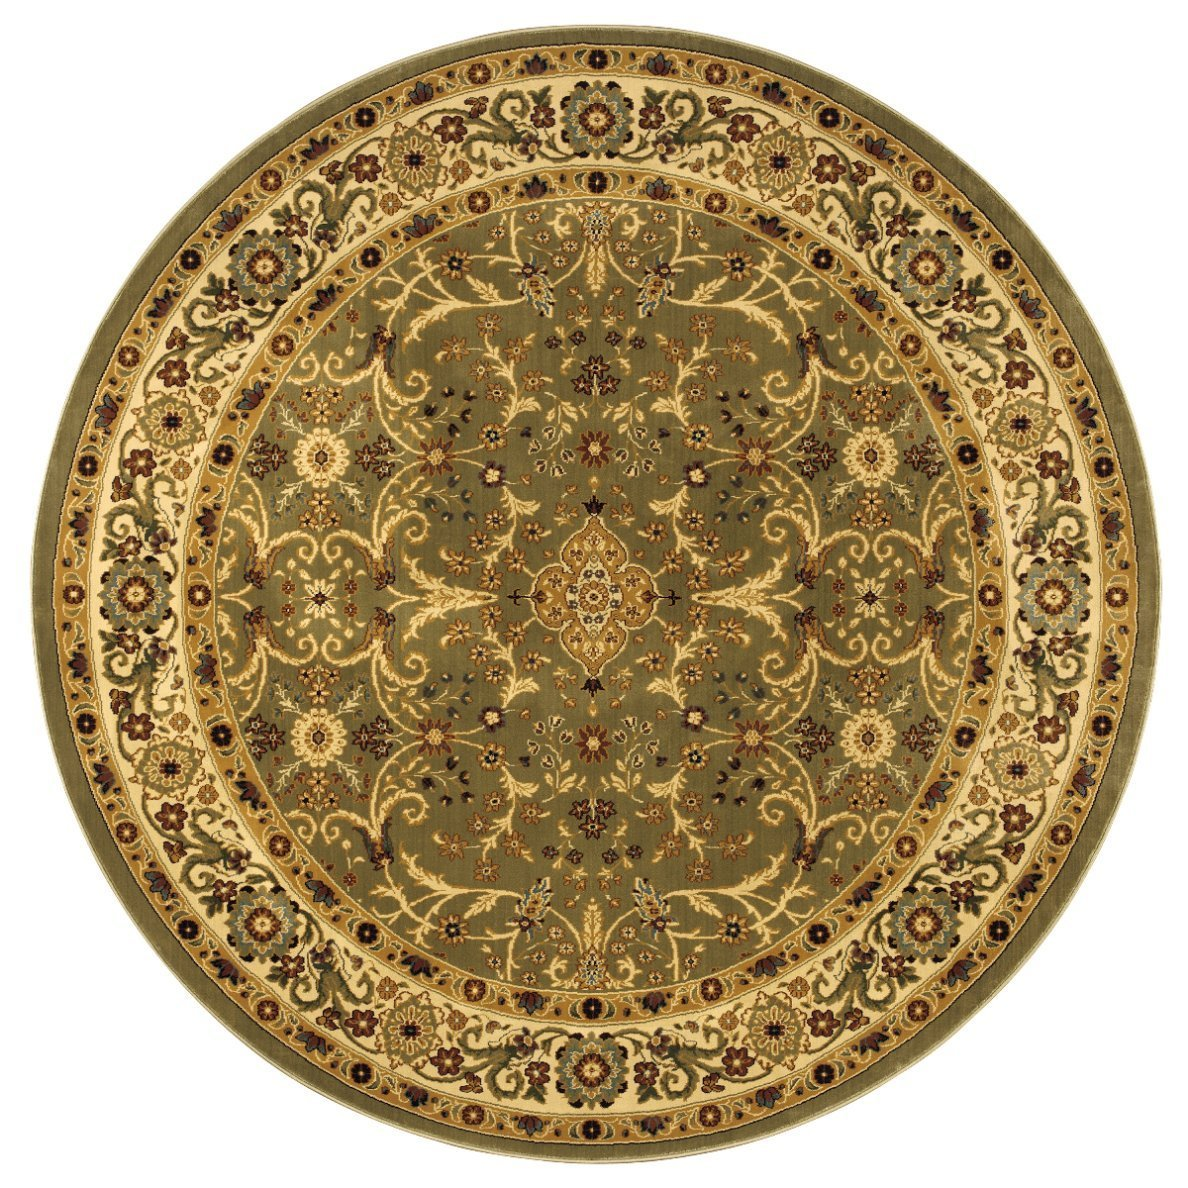 8-Foot 4-Inch Round Rug in Garden Fantasy Pattern